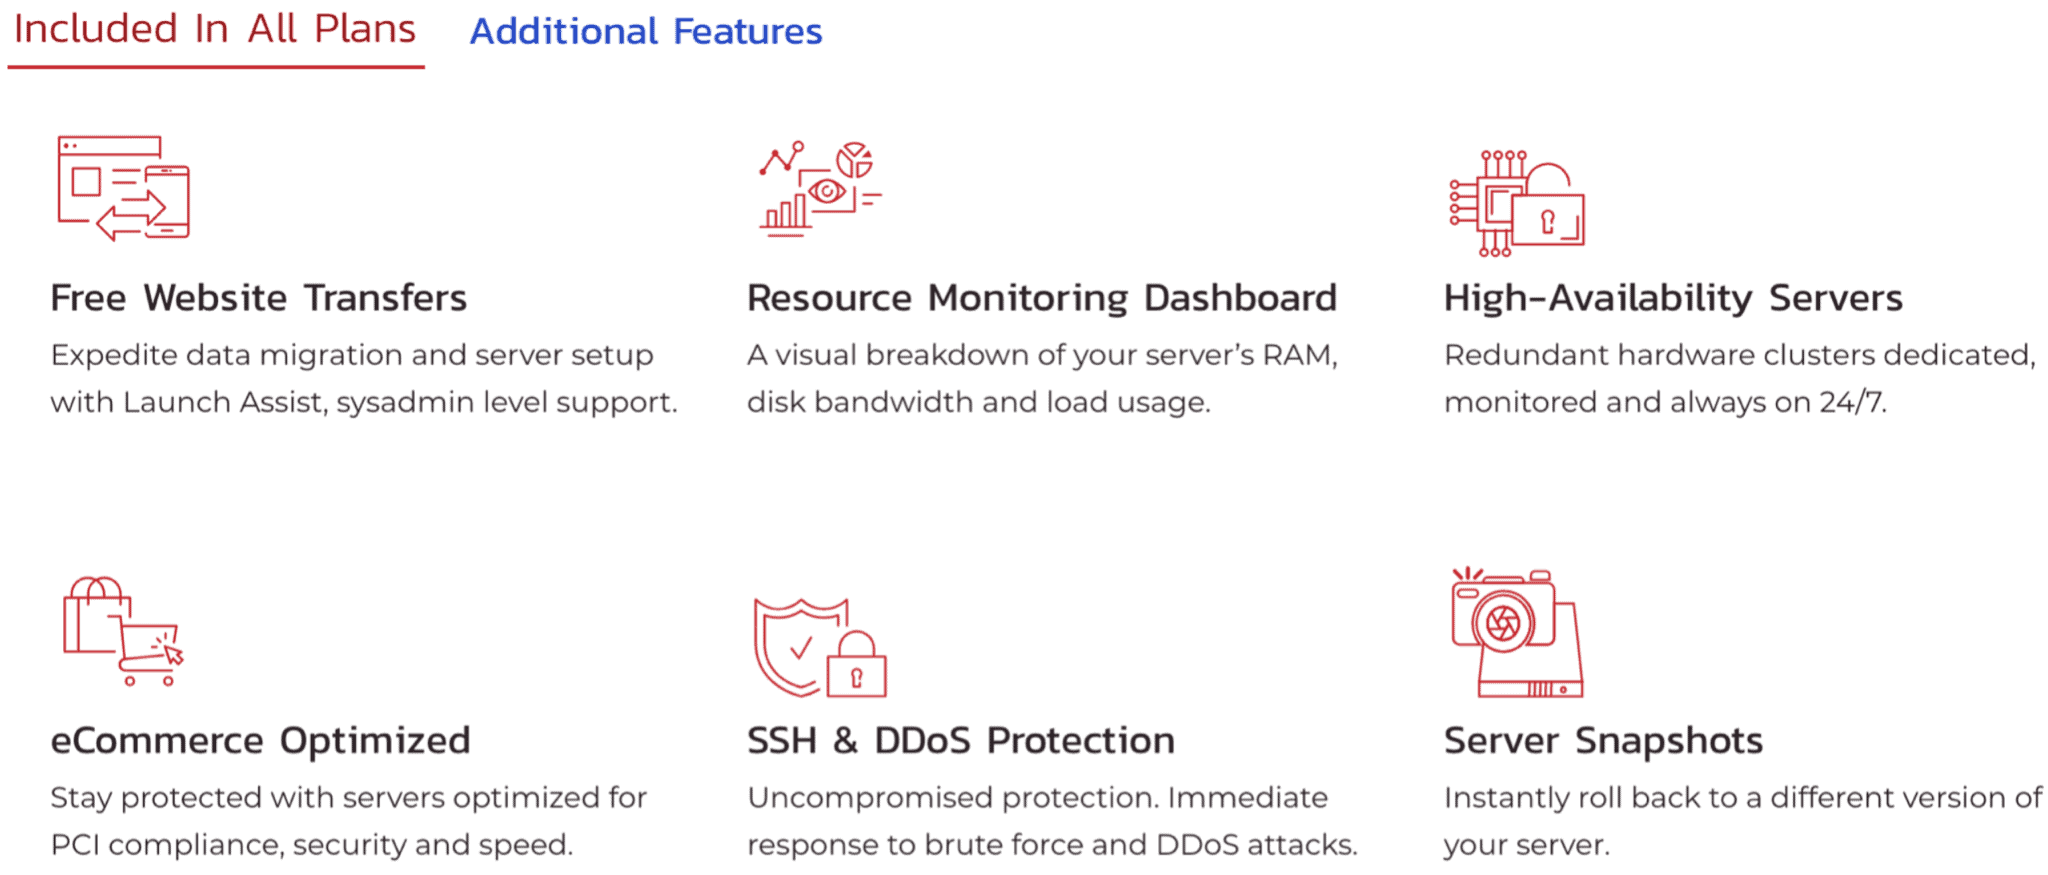 Details of features included in all of InMotion Hosting's plans